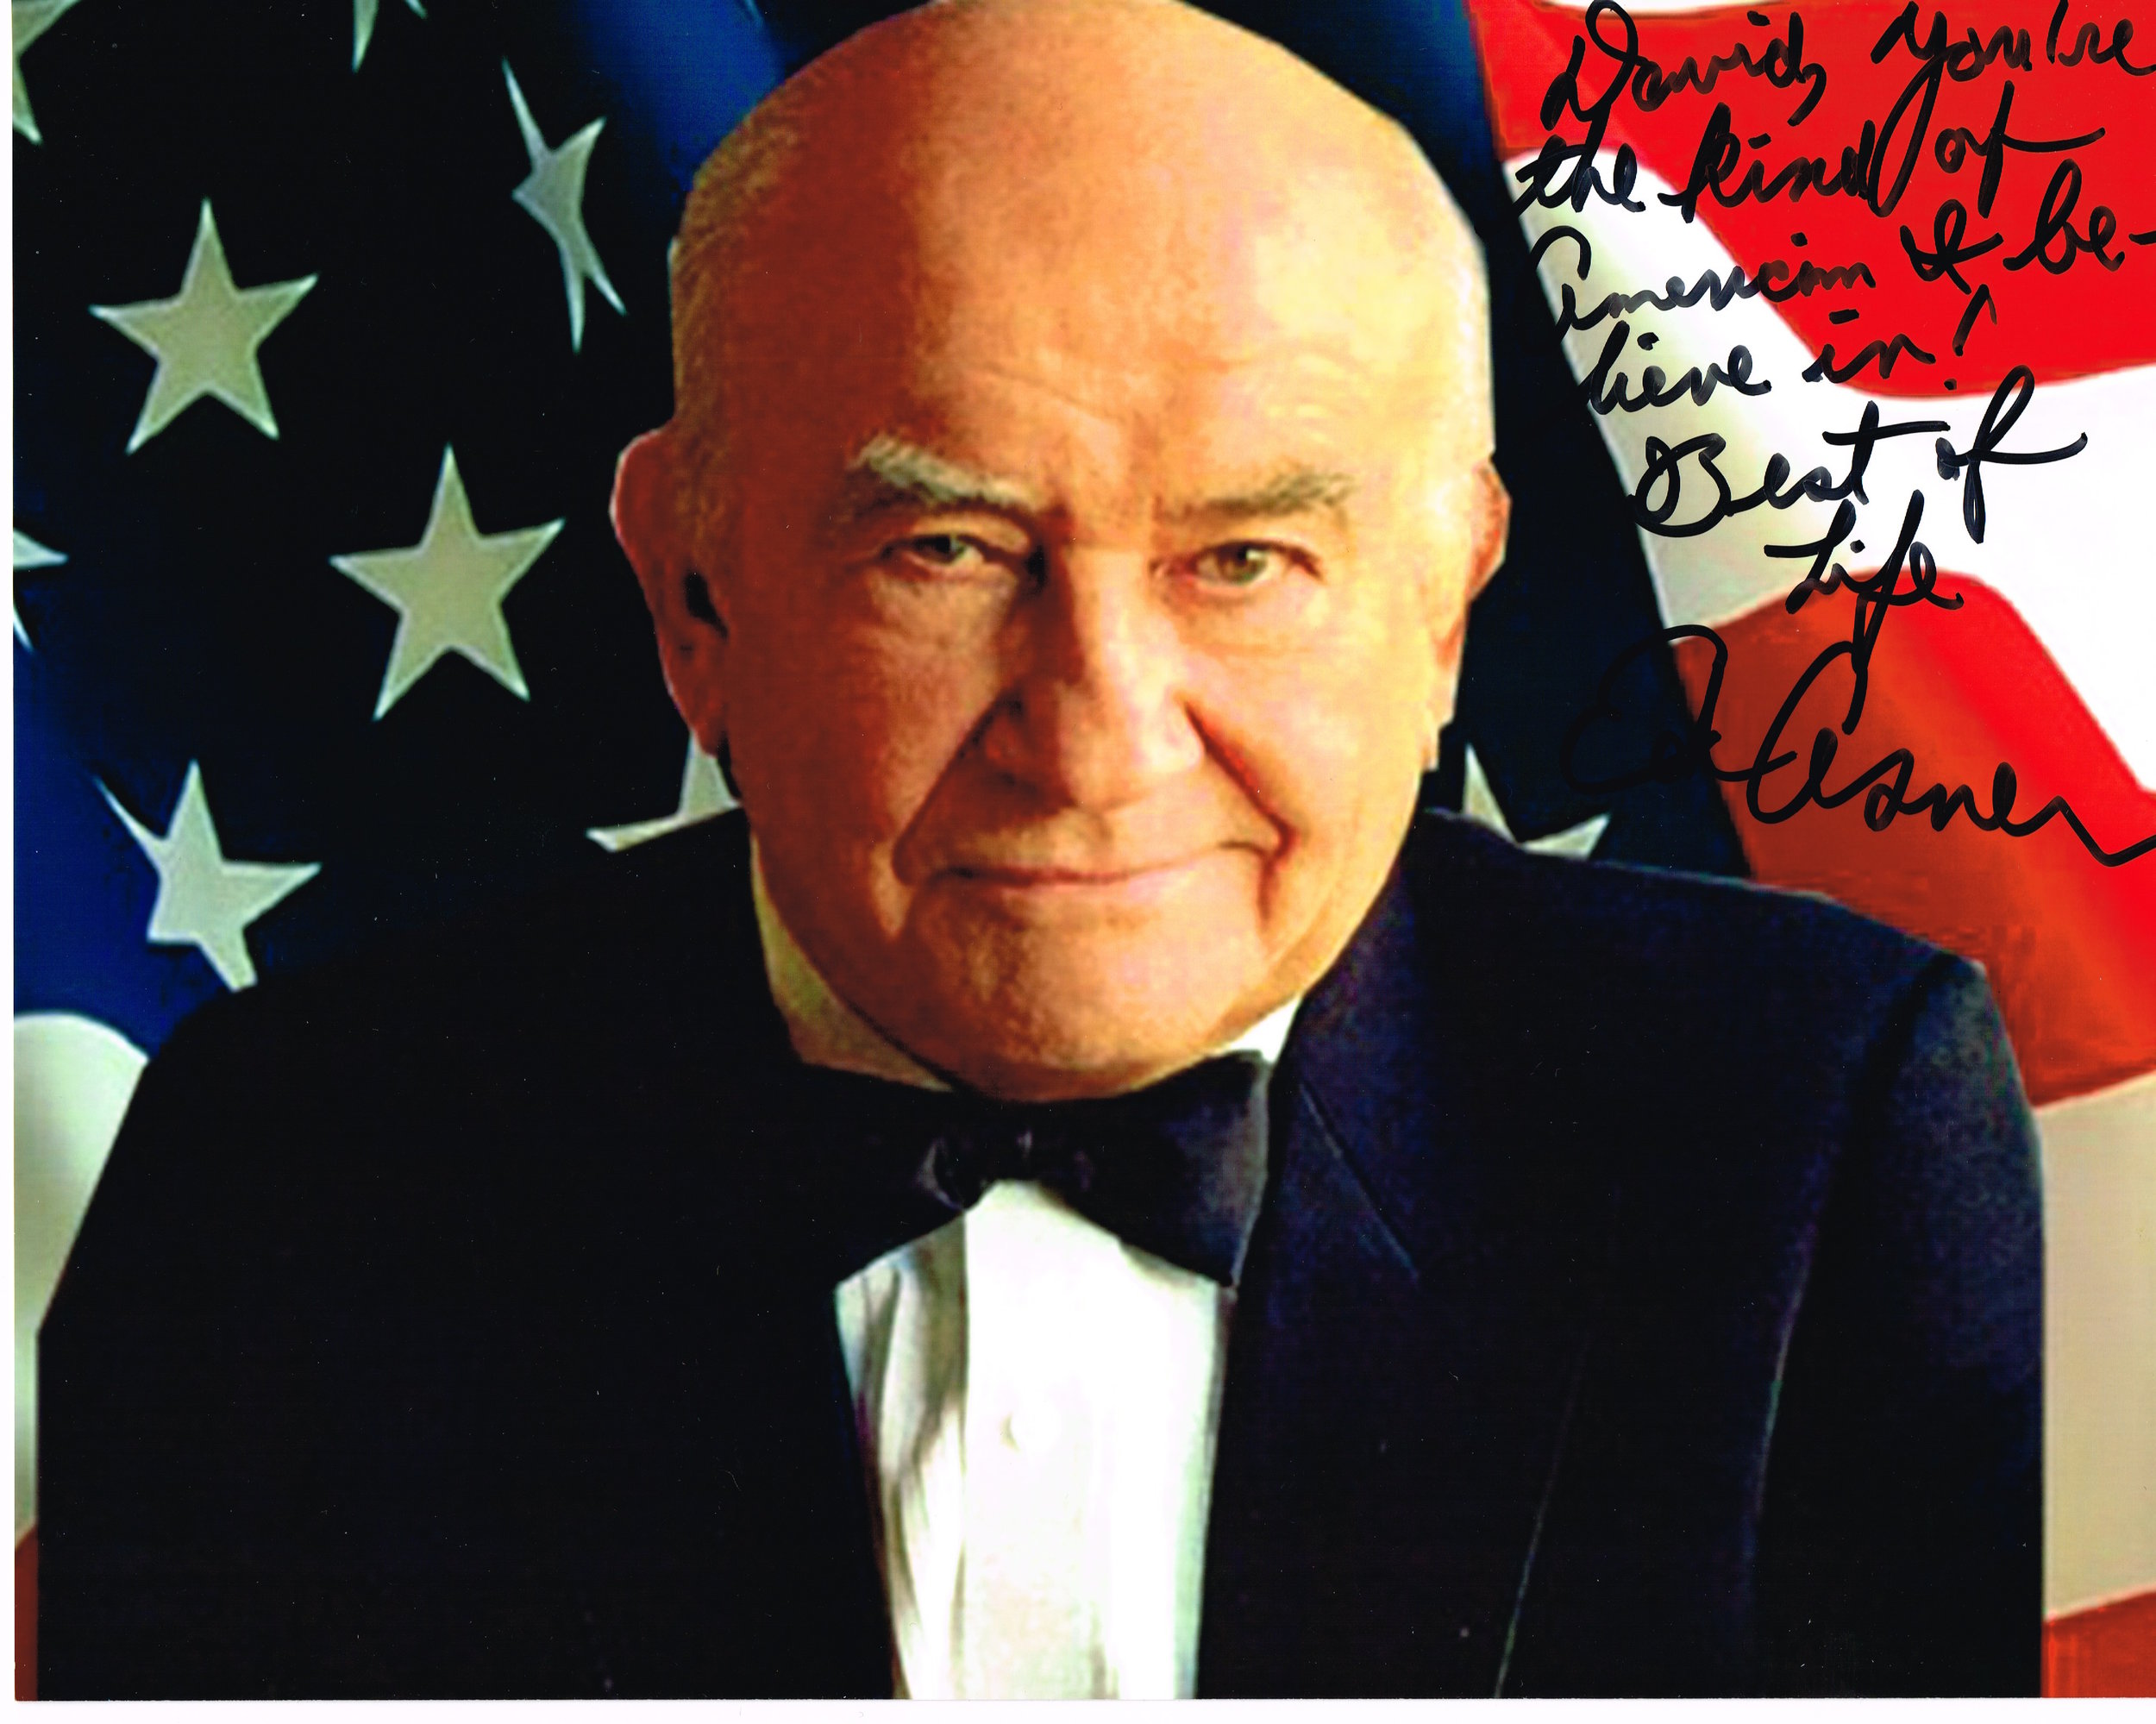 David, You are the kind of American I believe in. Ed Asner